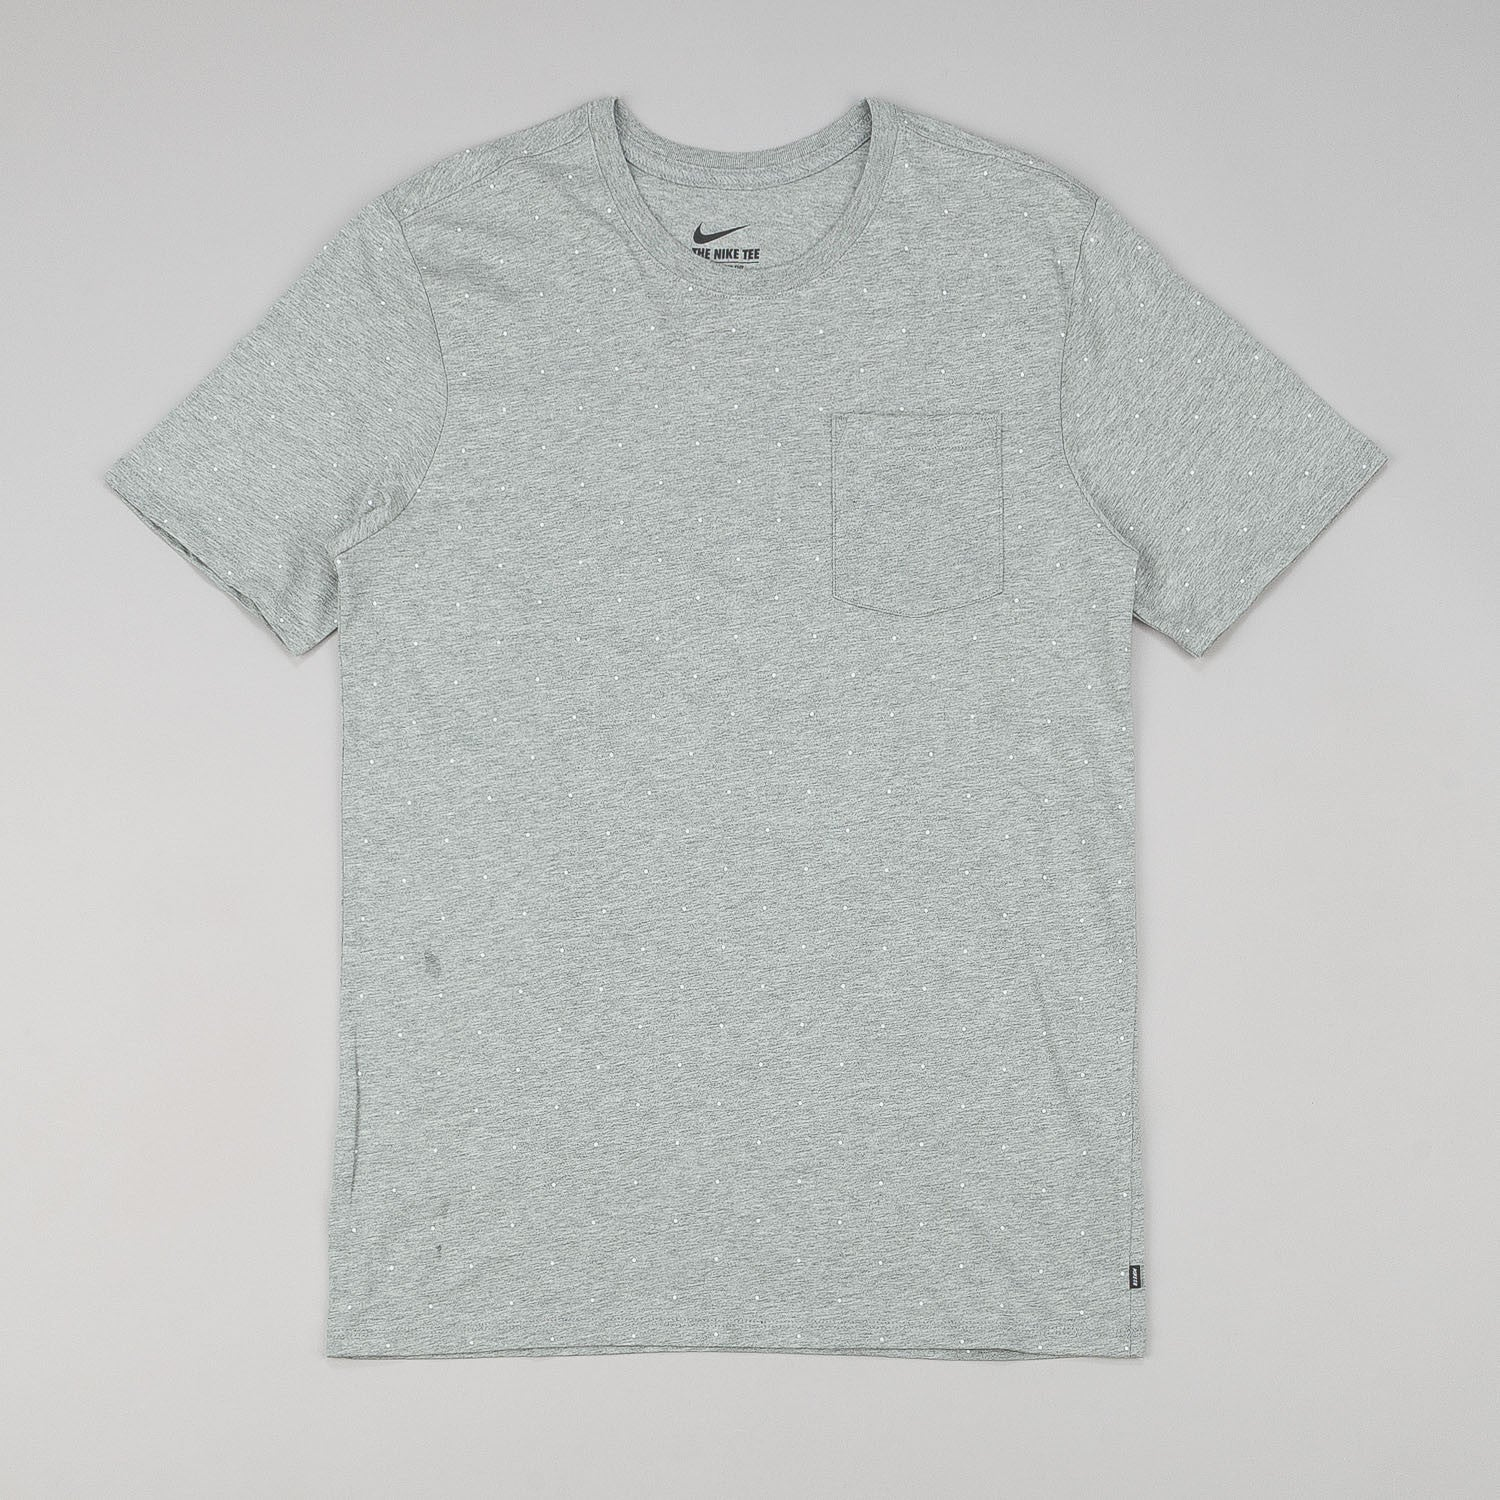 Nike SB AOP Micro Dot Short Sleeve T-Shirt - Heather Grey / White